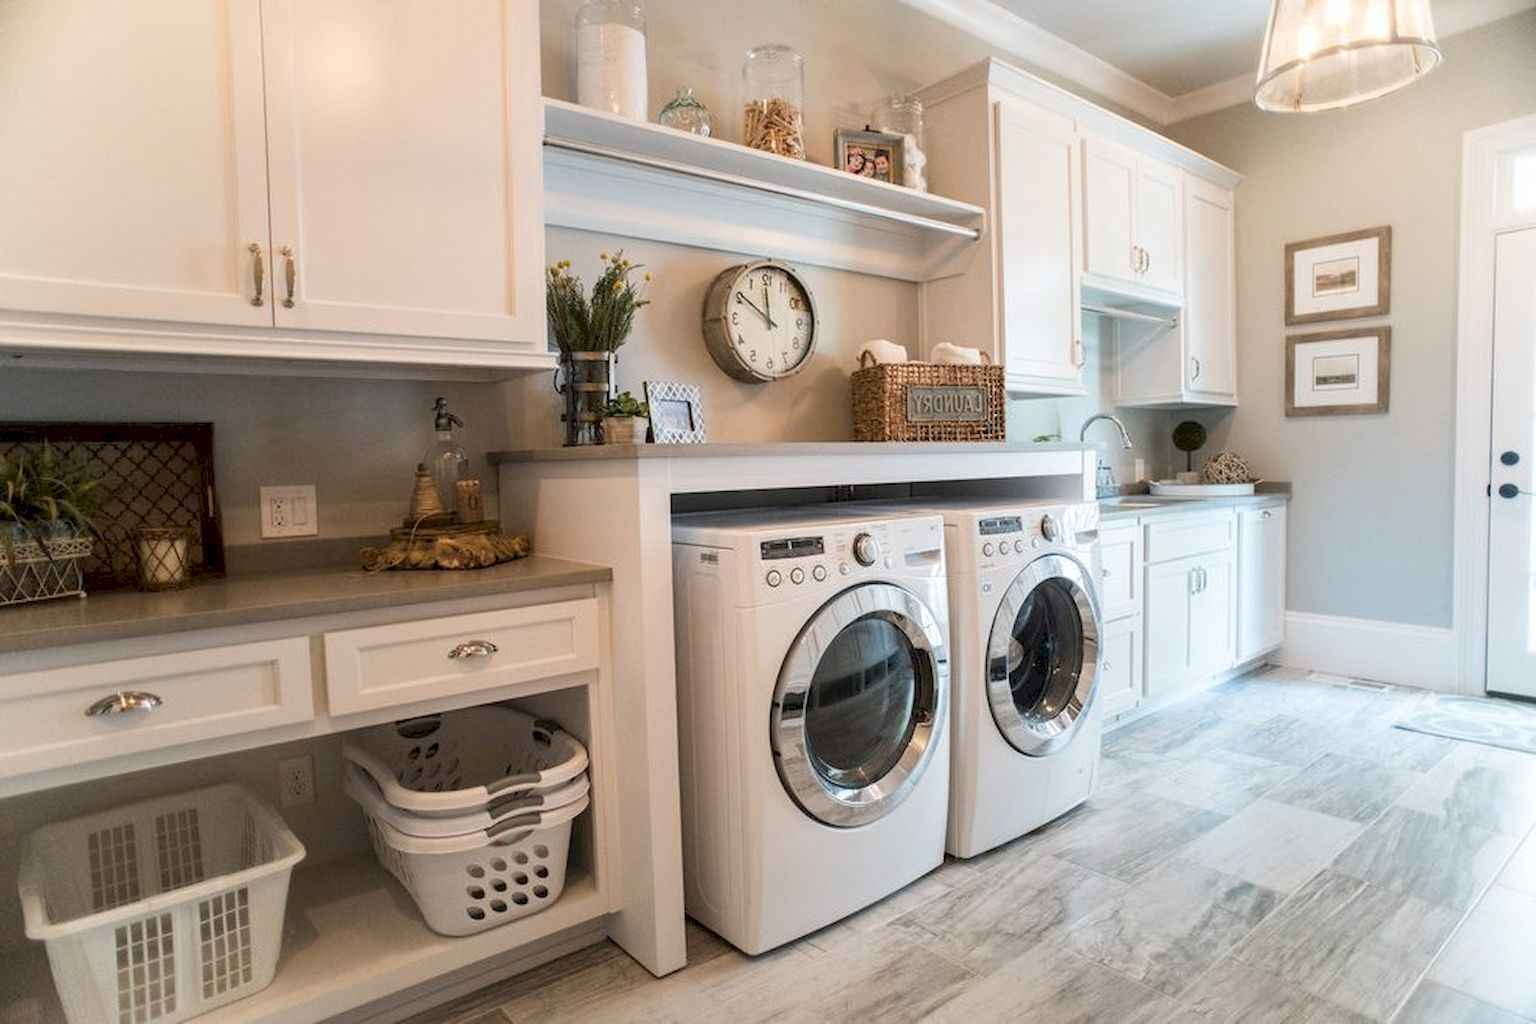 45 Rustic Farmhouse Laundry Room Design Ideas and Makeover (42)